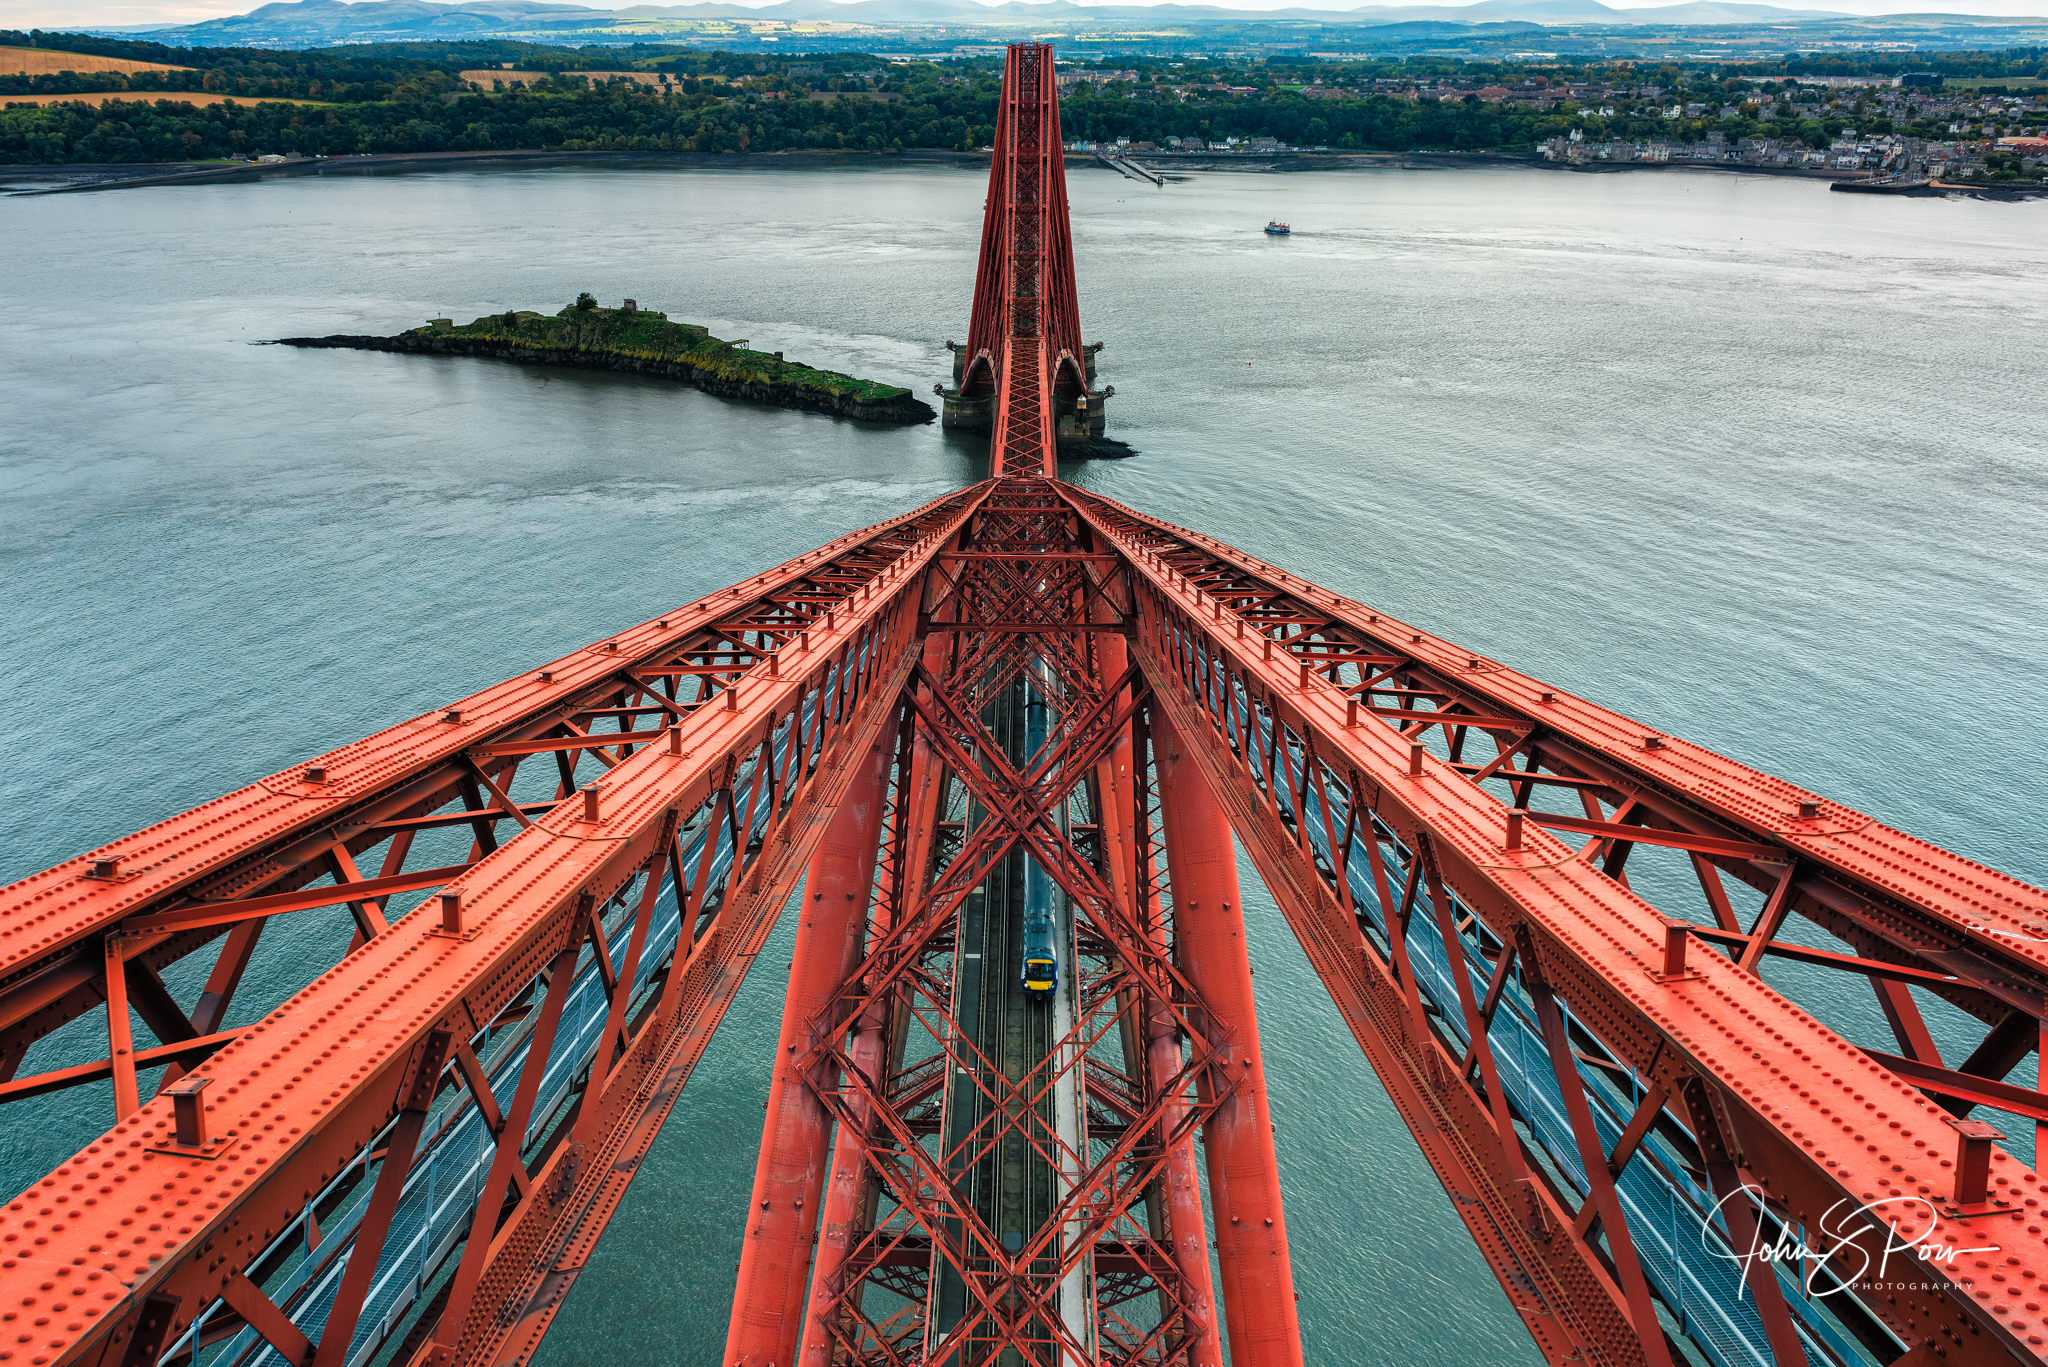 The view from the top of the Forth Bridge.